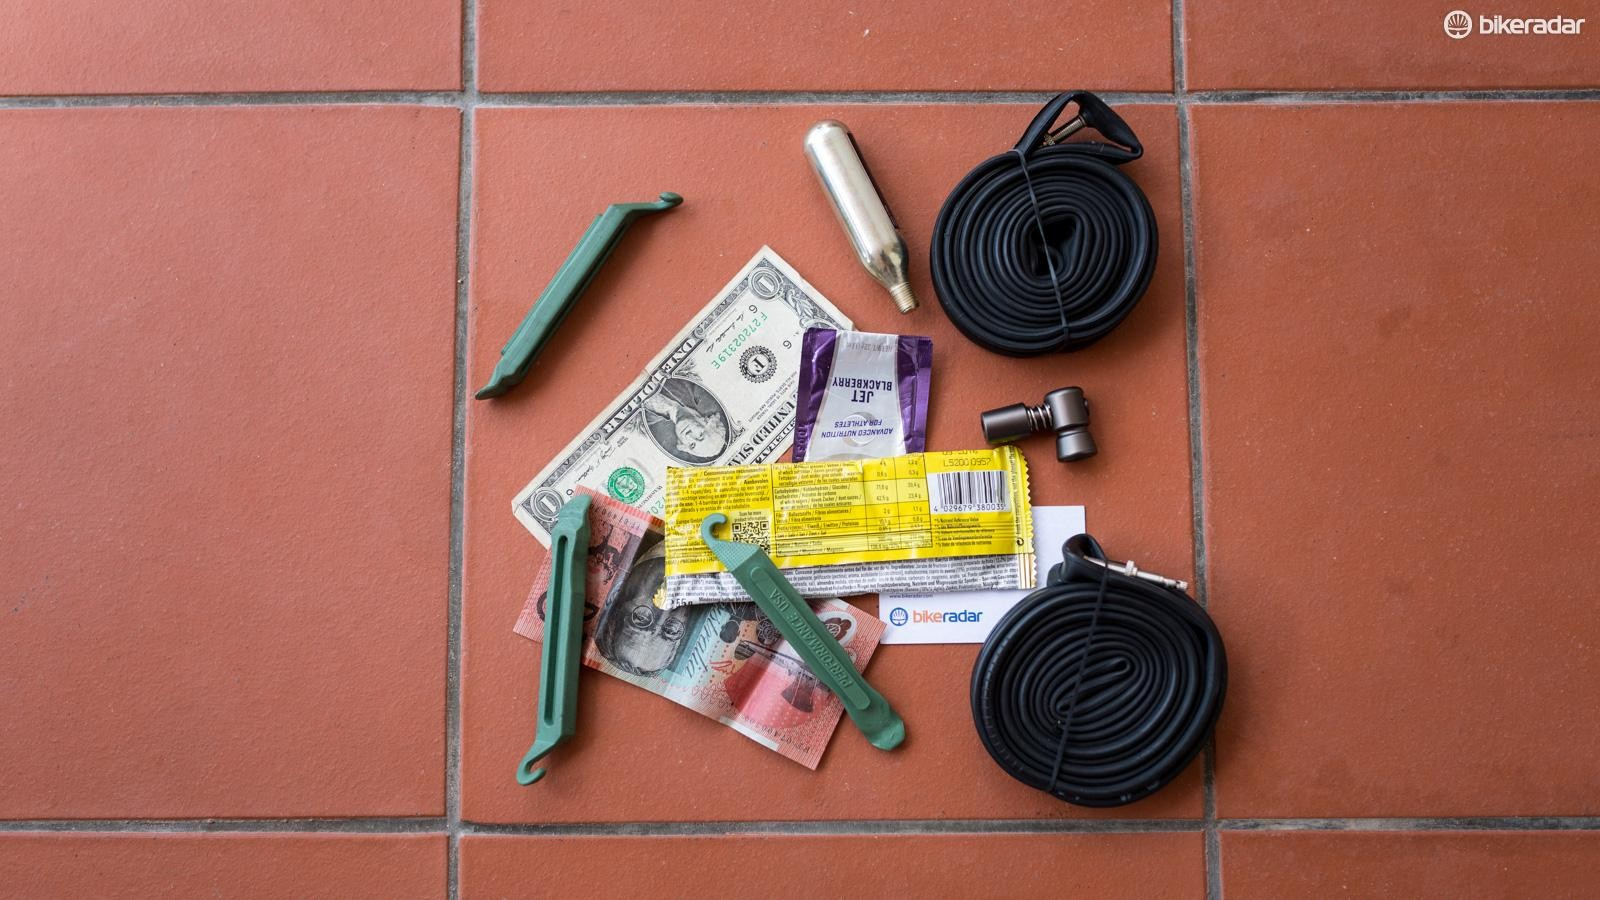 If you find yourself on the side of the road with a big cut in your tires sidewall or casing you can use a wrapper, dollar bill or even a business card to limp home